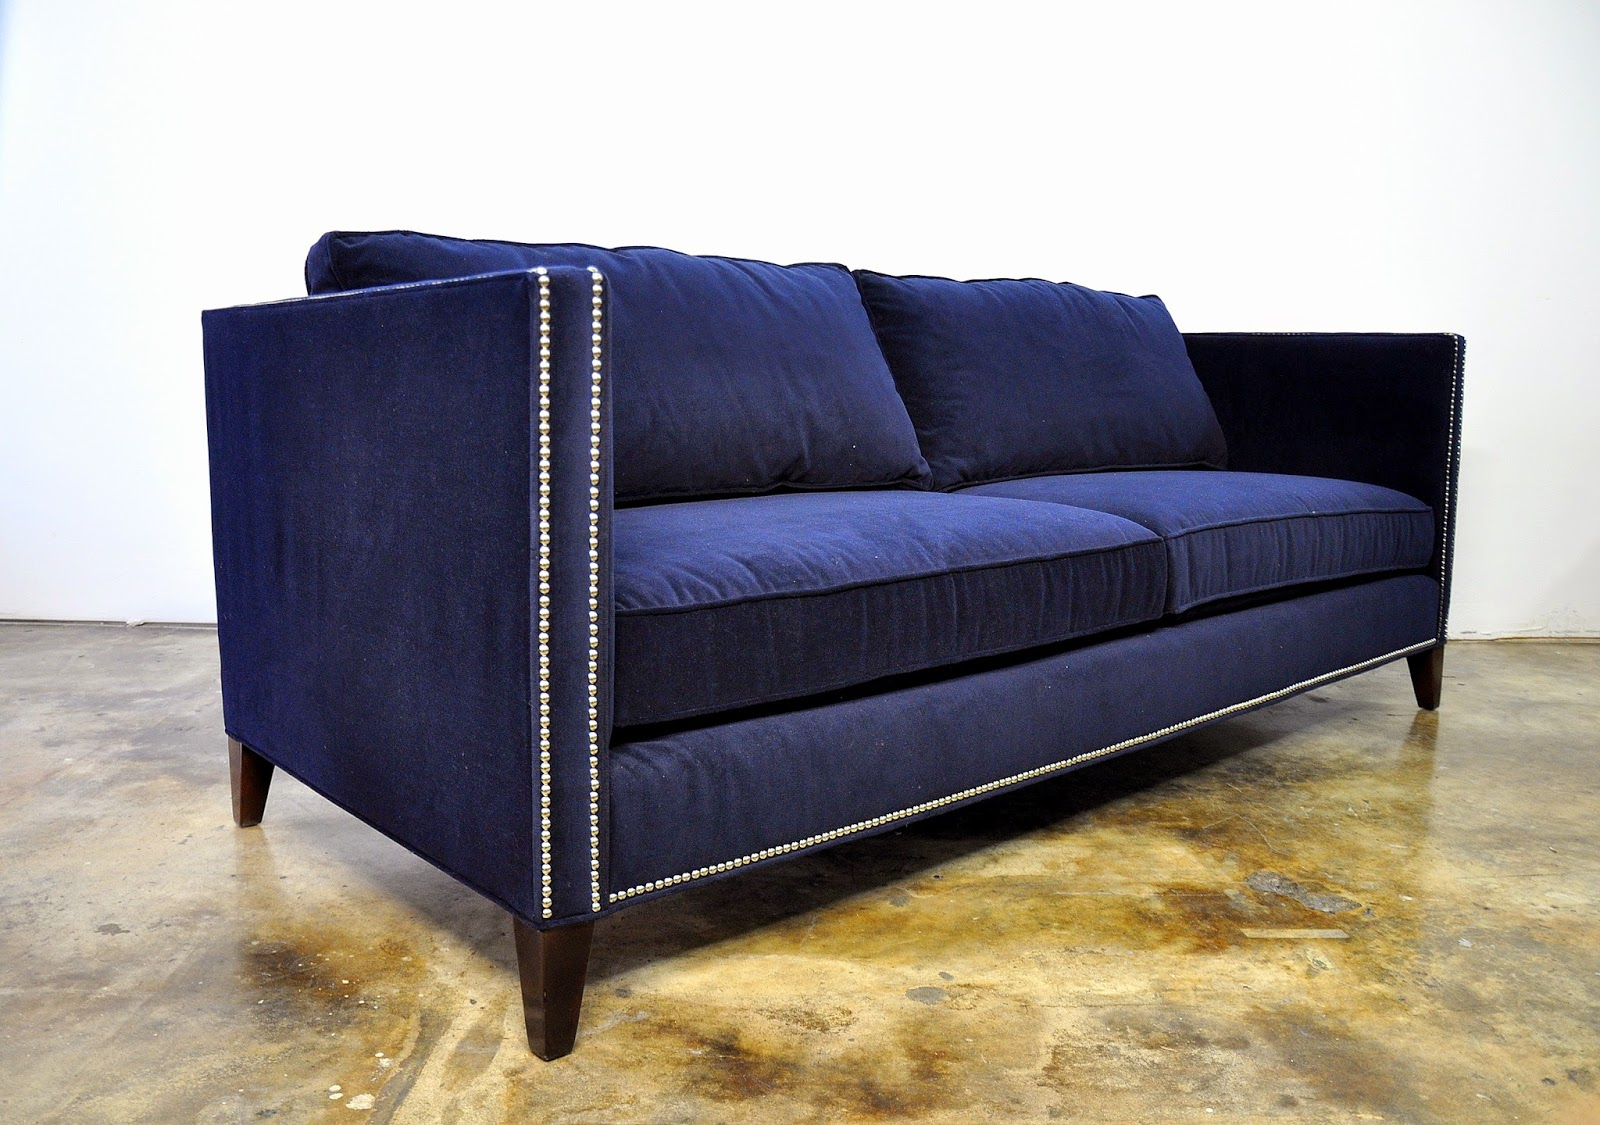 Blue Suede Sofa Heavy Duty Inflatable Uk Select Modern Mitchell Gold 43 Bob Williams